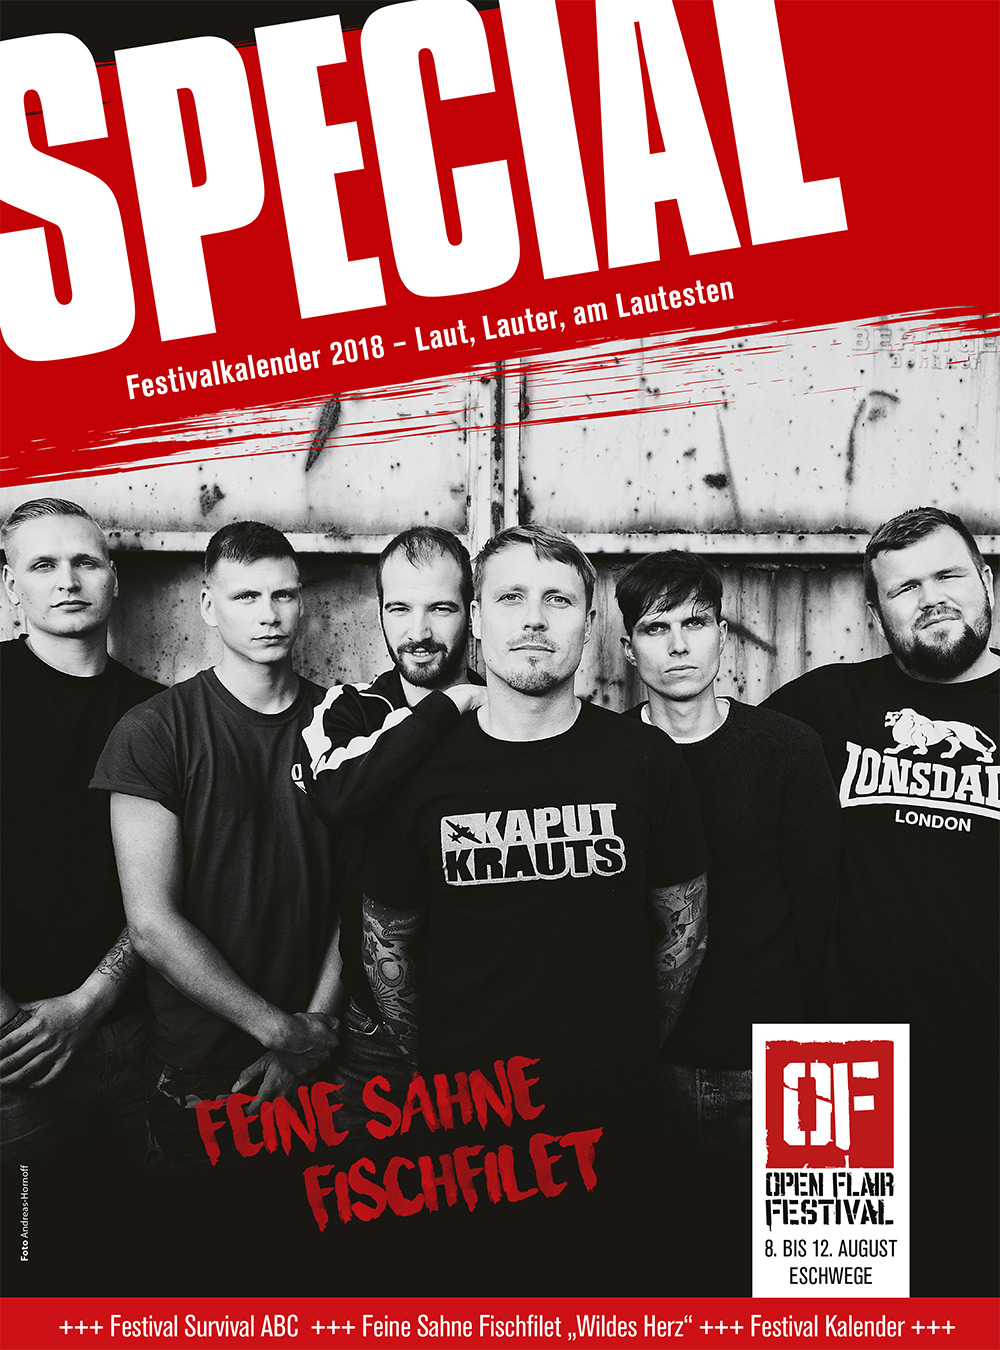 SP SUBWAY 1804 Specil Feine Sahne Art